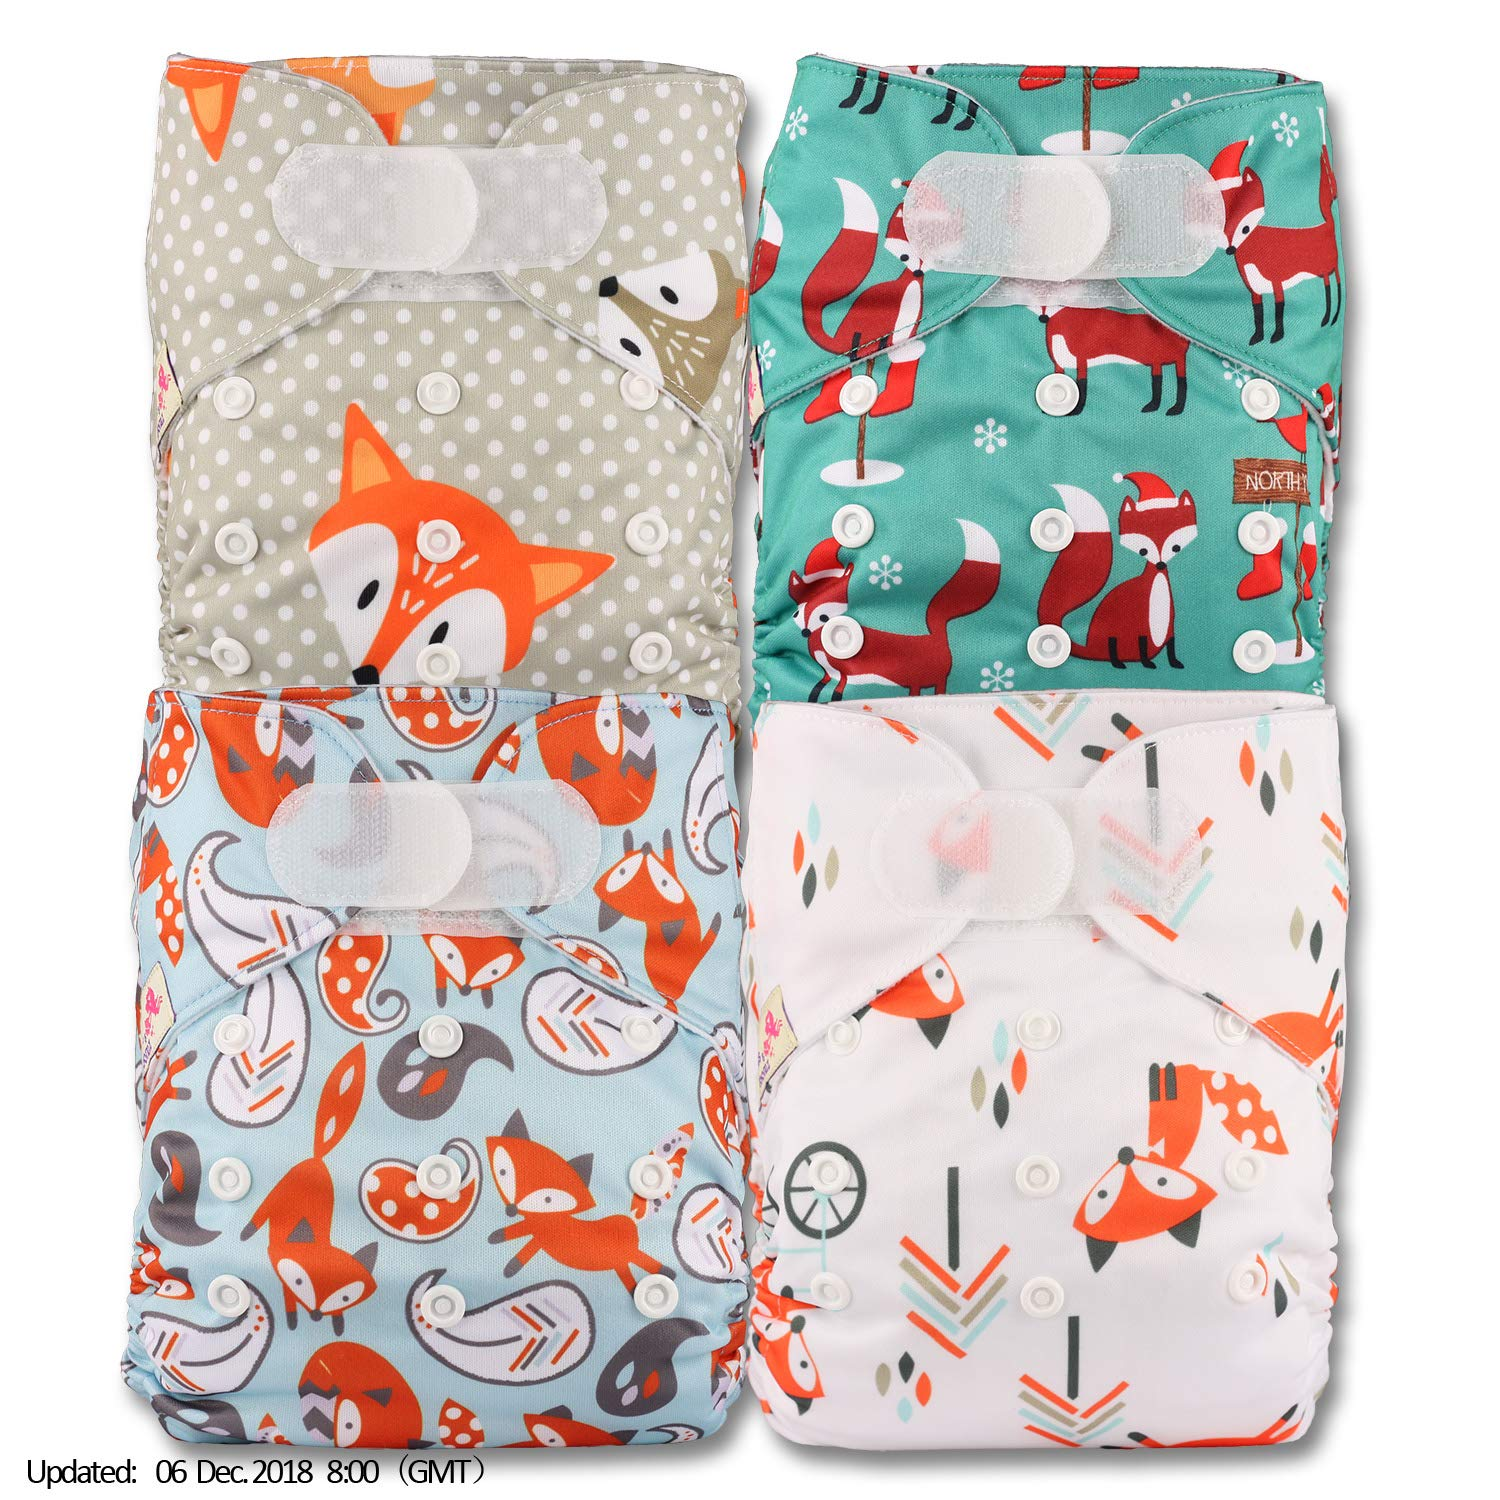 Patterns 408 with 4 Bamboo Inserts Littles /& Bloomz Fastener: Hook-Loop Set of 4 Reusable Pocket Cloth Nappy